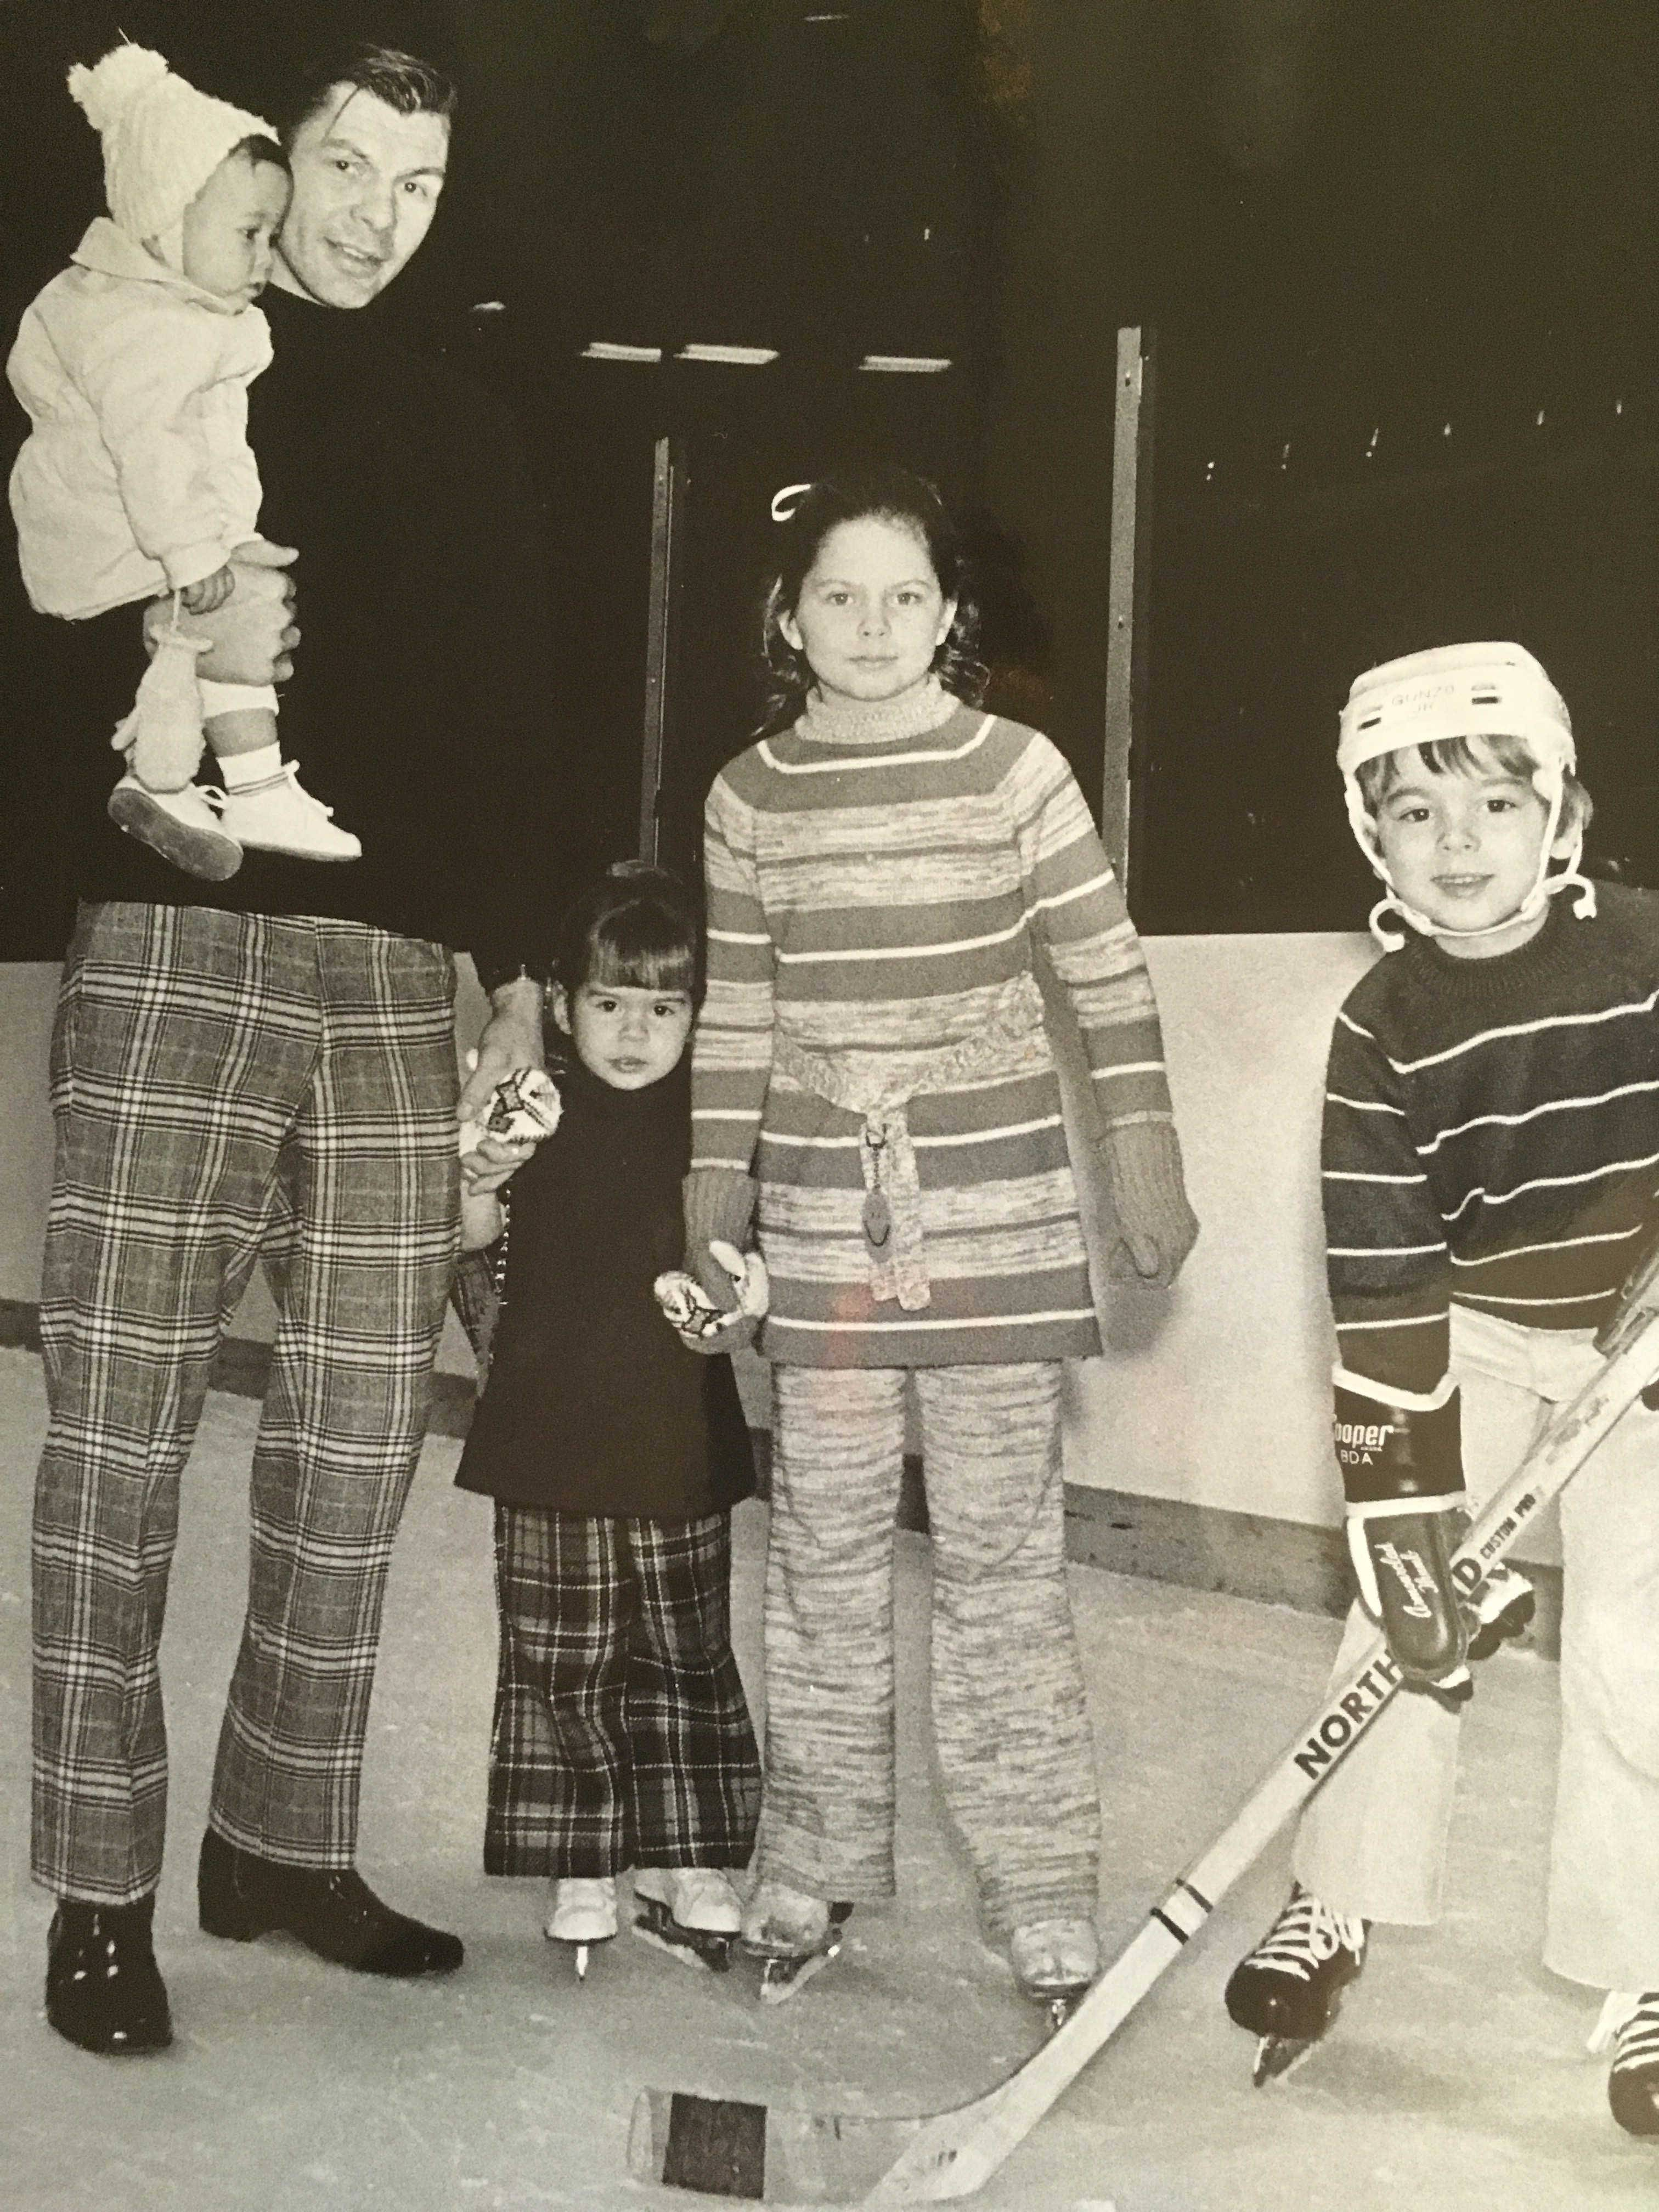 Remembering Stan Mikita, the ultimate family man